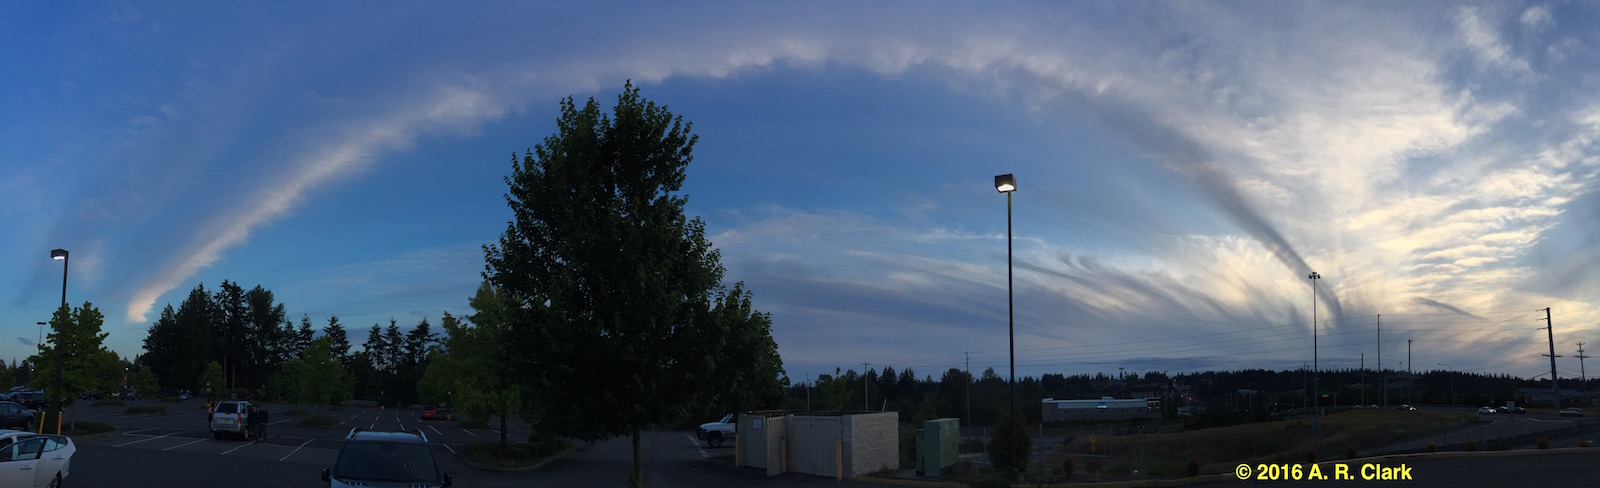 panoramic view of cloud vortex streaming out of a storm.